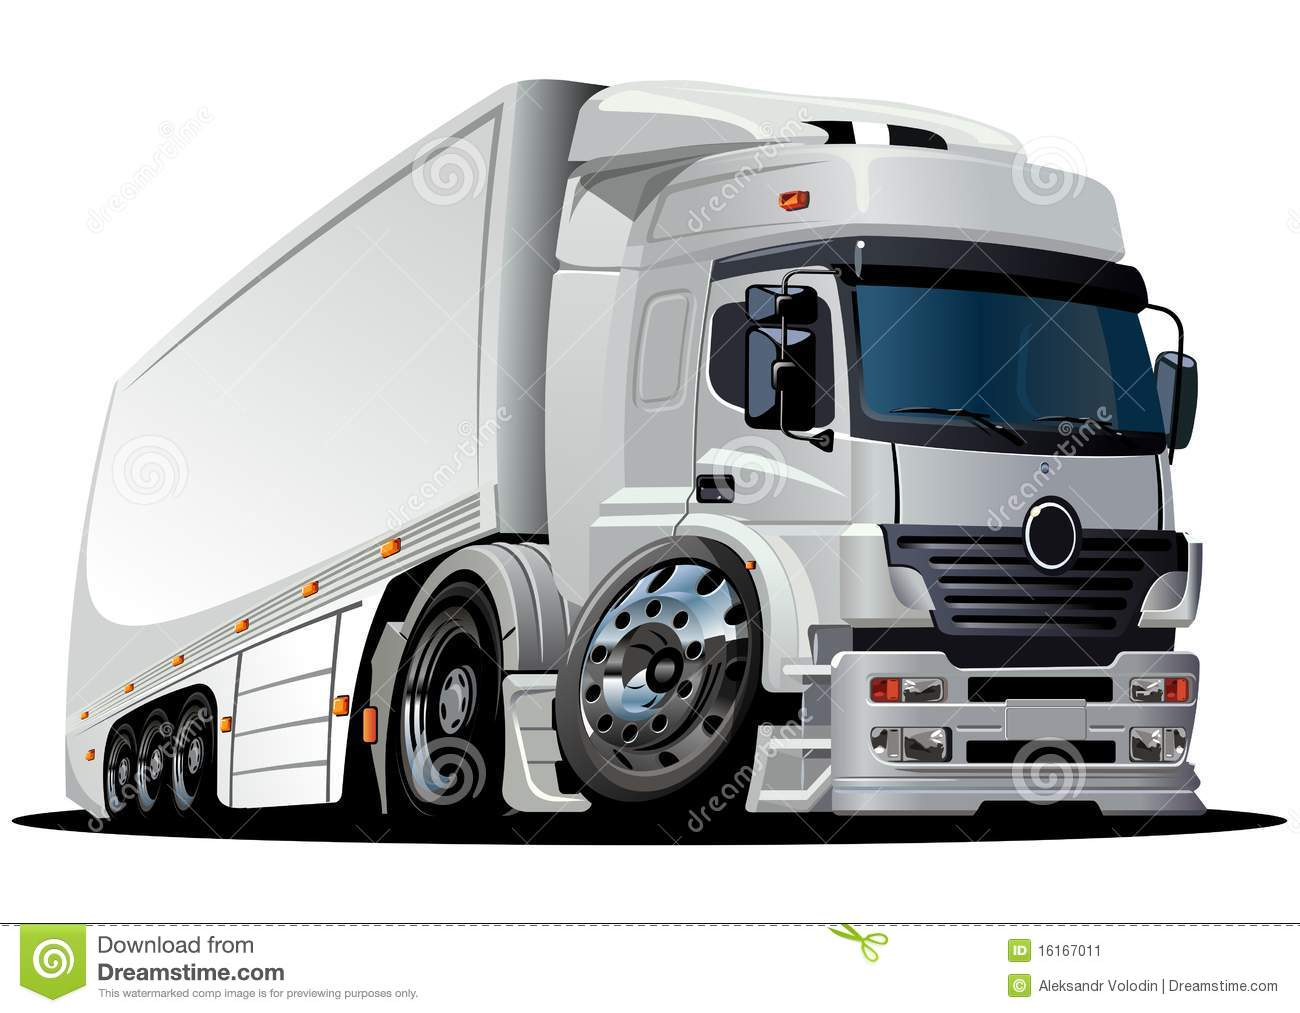 Apple  puter Education in addition Off Road Semi Truck further Coloriage Le Premier Camion De Pompiers in addition 6157570264 additionally Brokedown Kenworth 407115373. on kenworth drawing